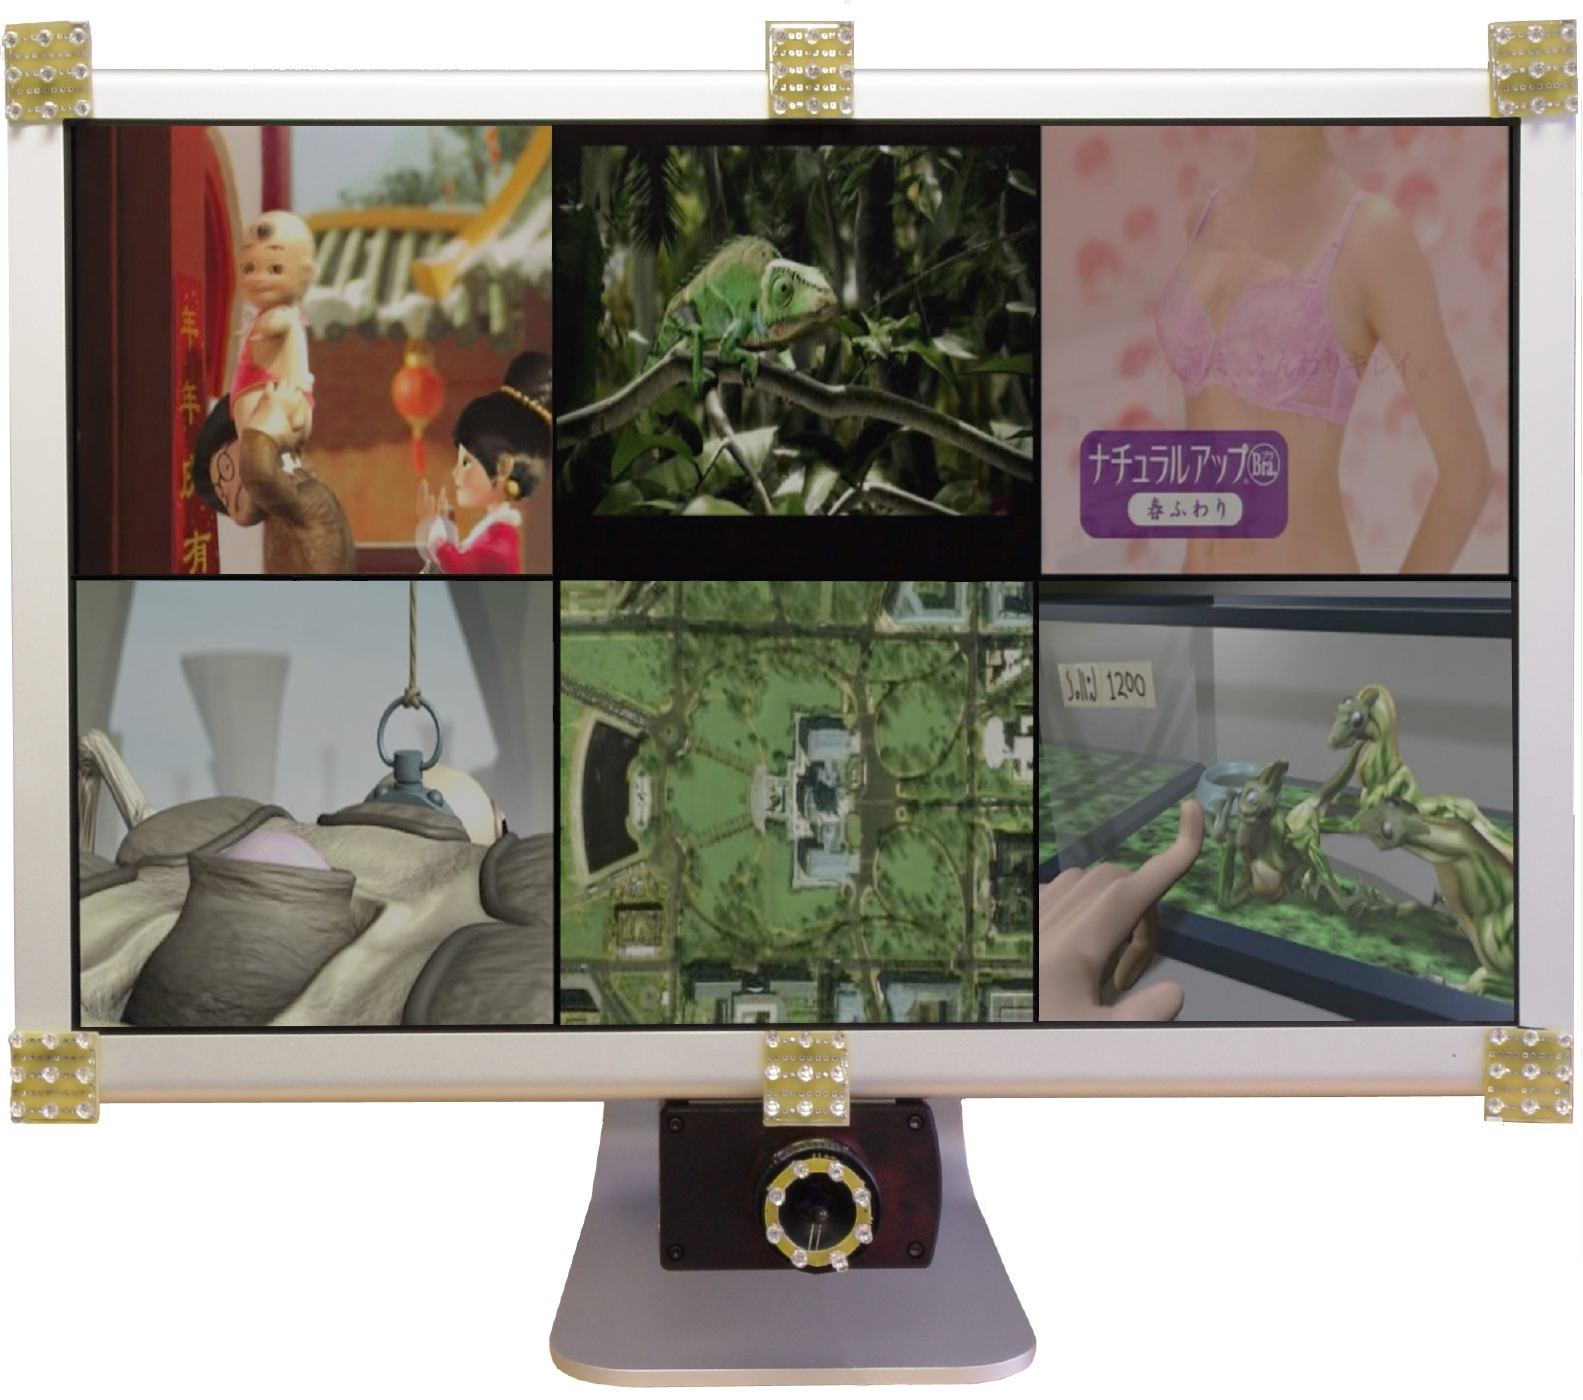 media eyepliances (2005) calibration-free eye tracking tv